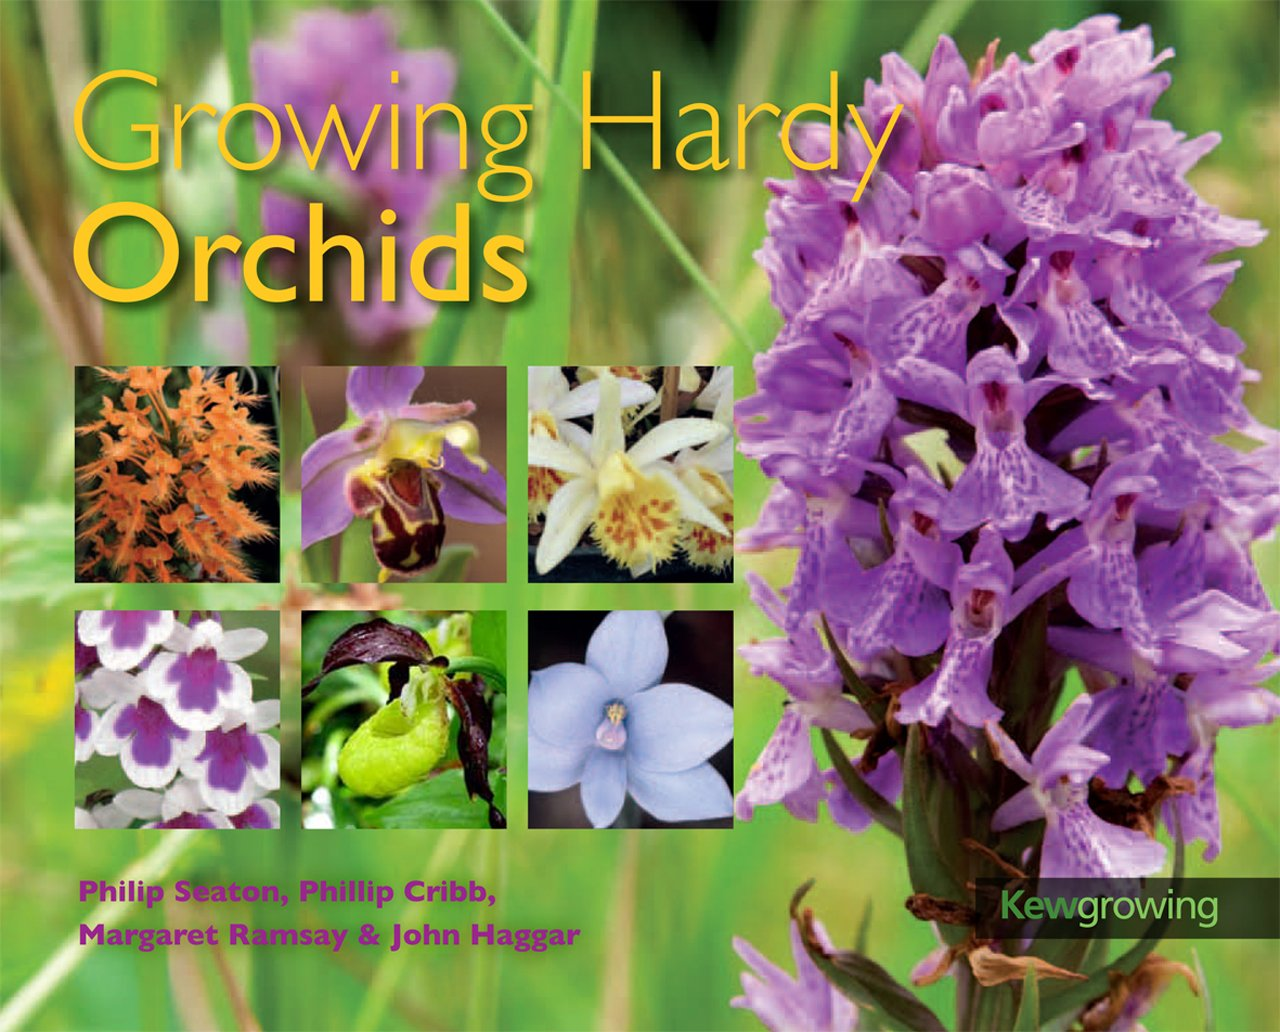 Download Growing Hardy Orchids (Kew Growing) ebook